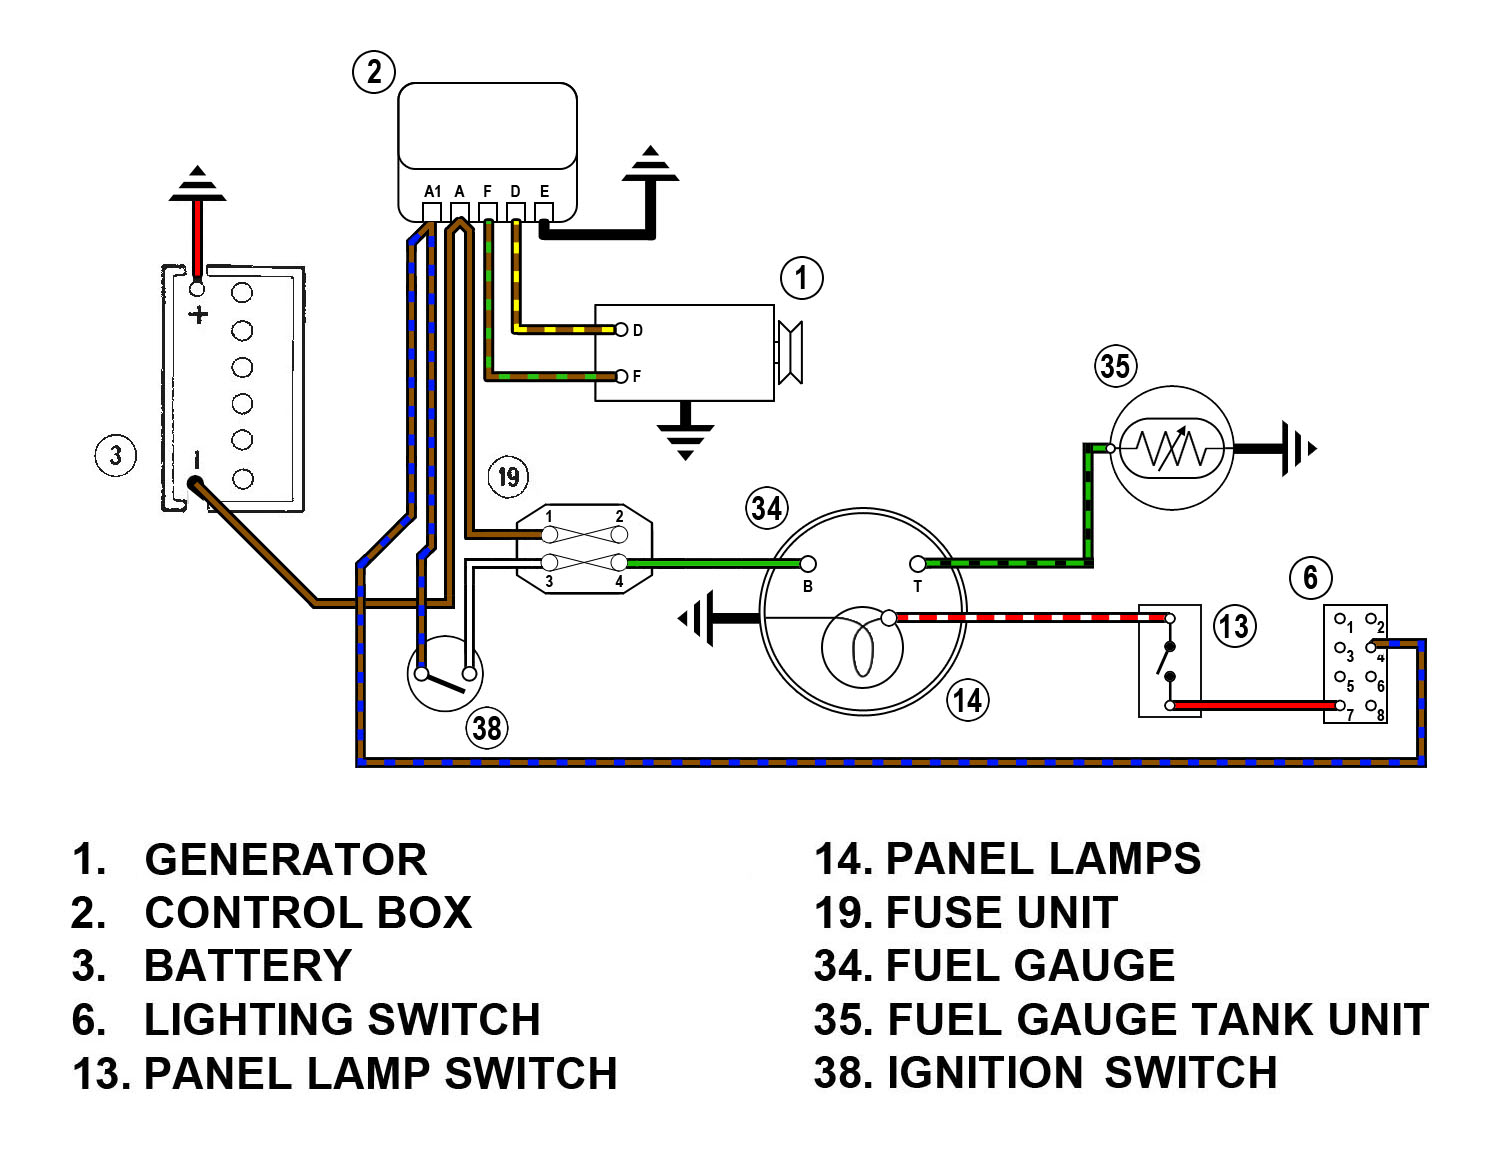 wiring fuel gauge online schematic diagram u2022 rh holyoak co